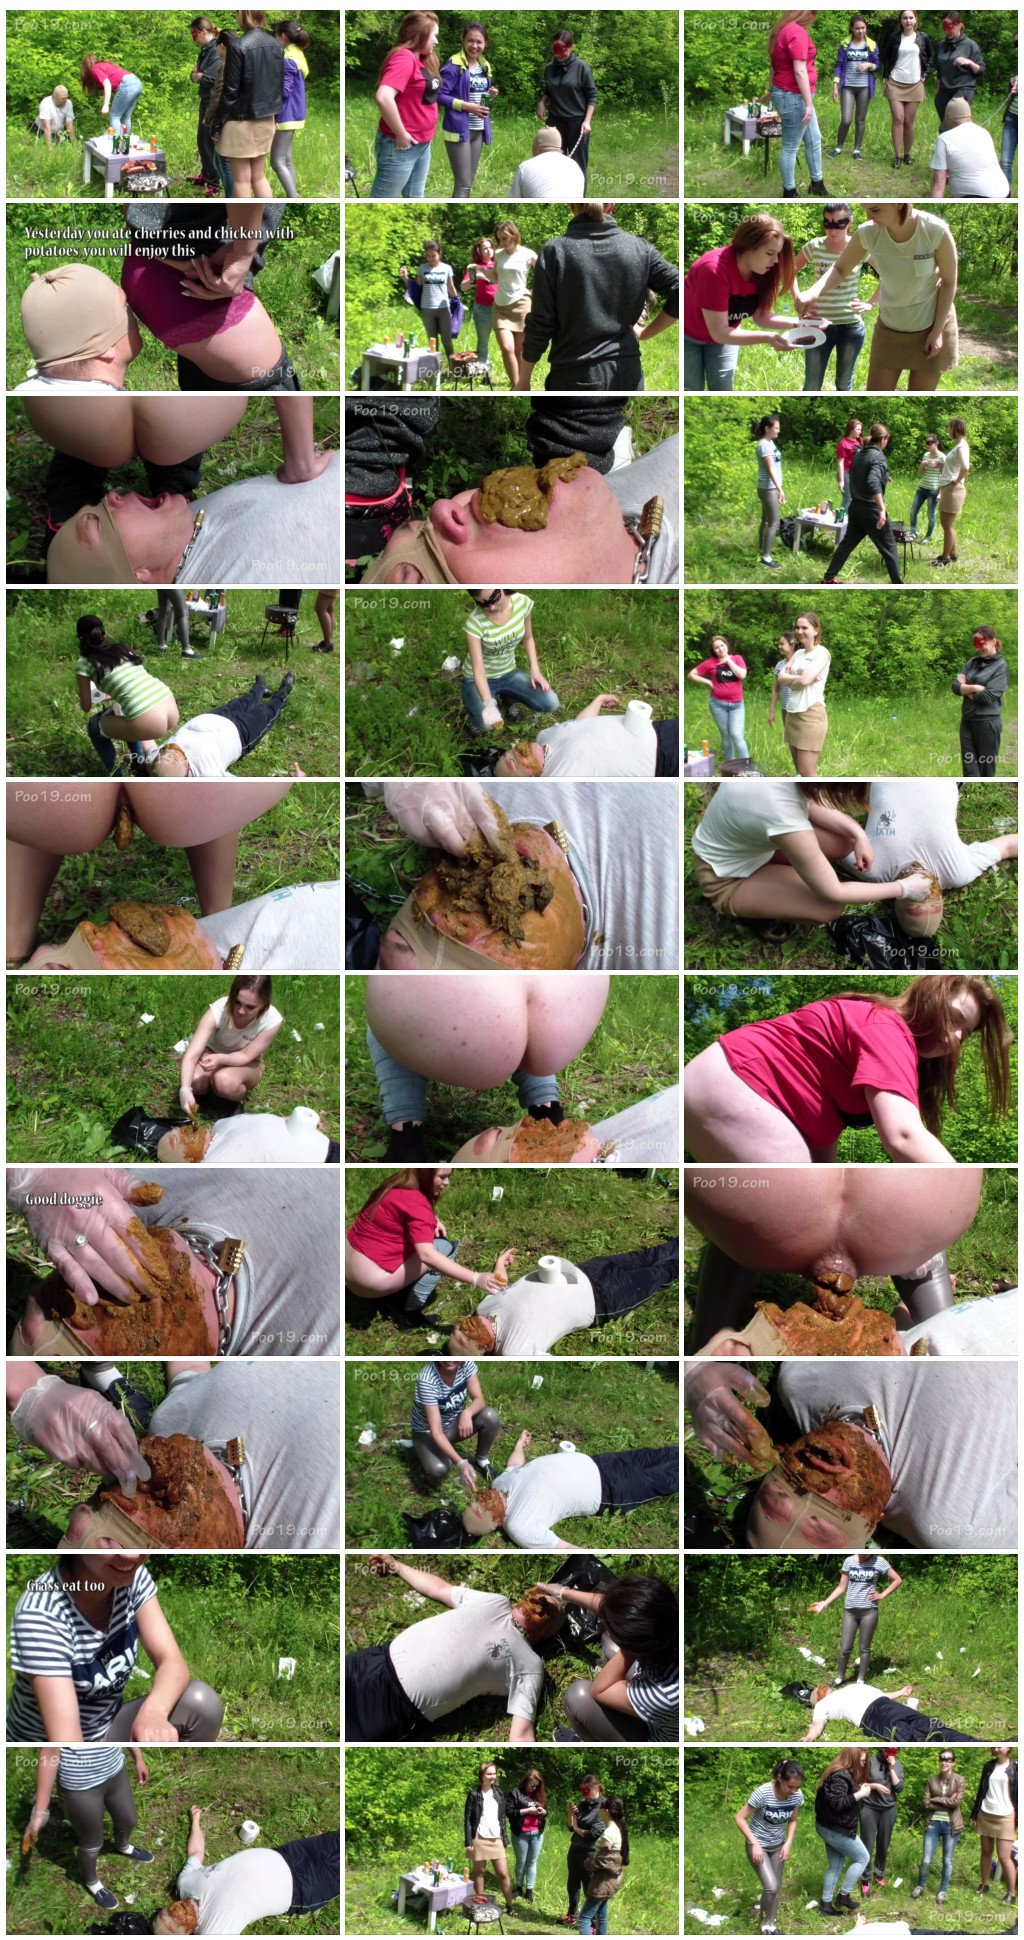 [Poo19.com - ScatShop.com] SmellyMilana-Married man toilet at the hen party  [ Scat, Human Toilet, Humiliation, Toilet Slavery]